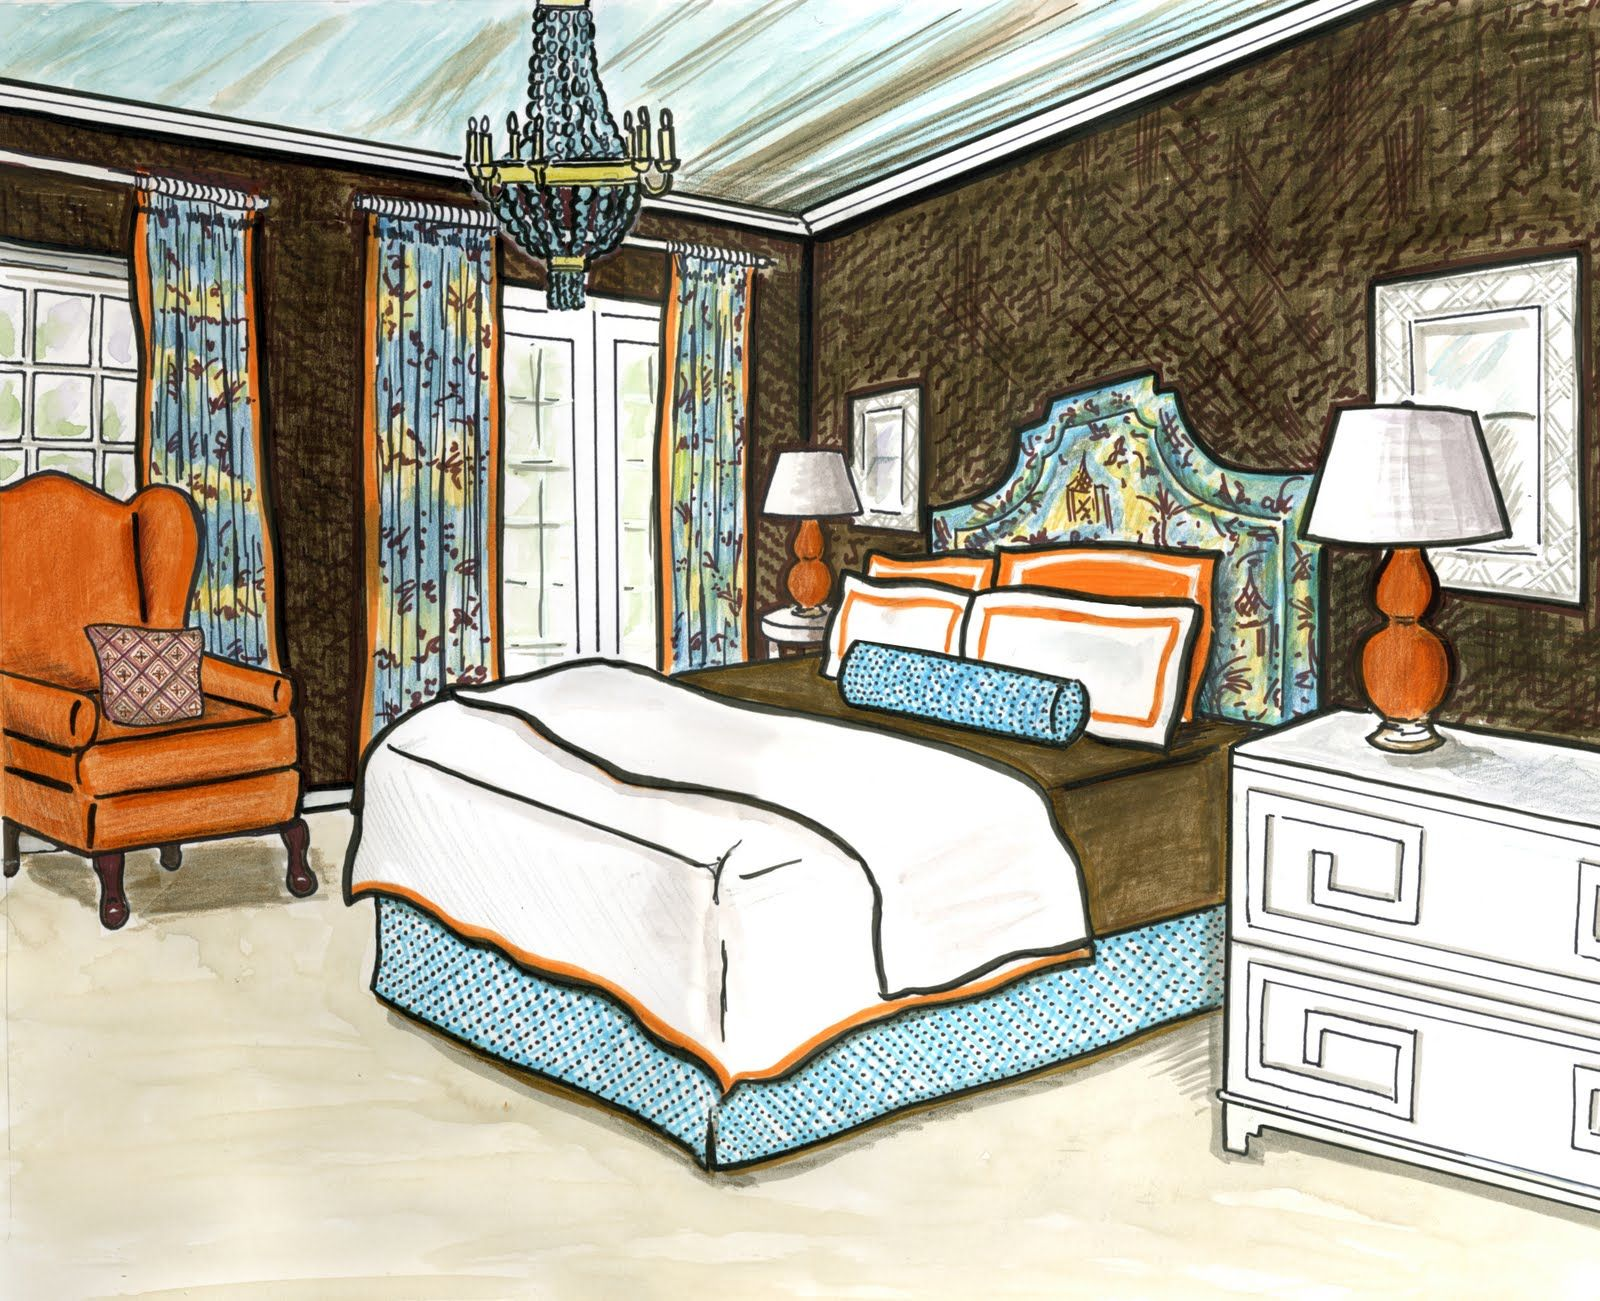 Bedroom drawing with color - Original Wedding Invitations And More See More Line Drawing Office Bedroom